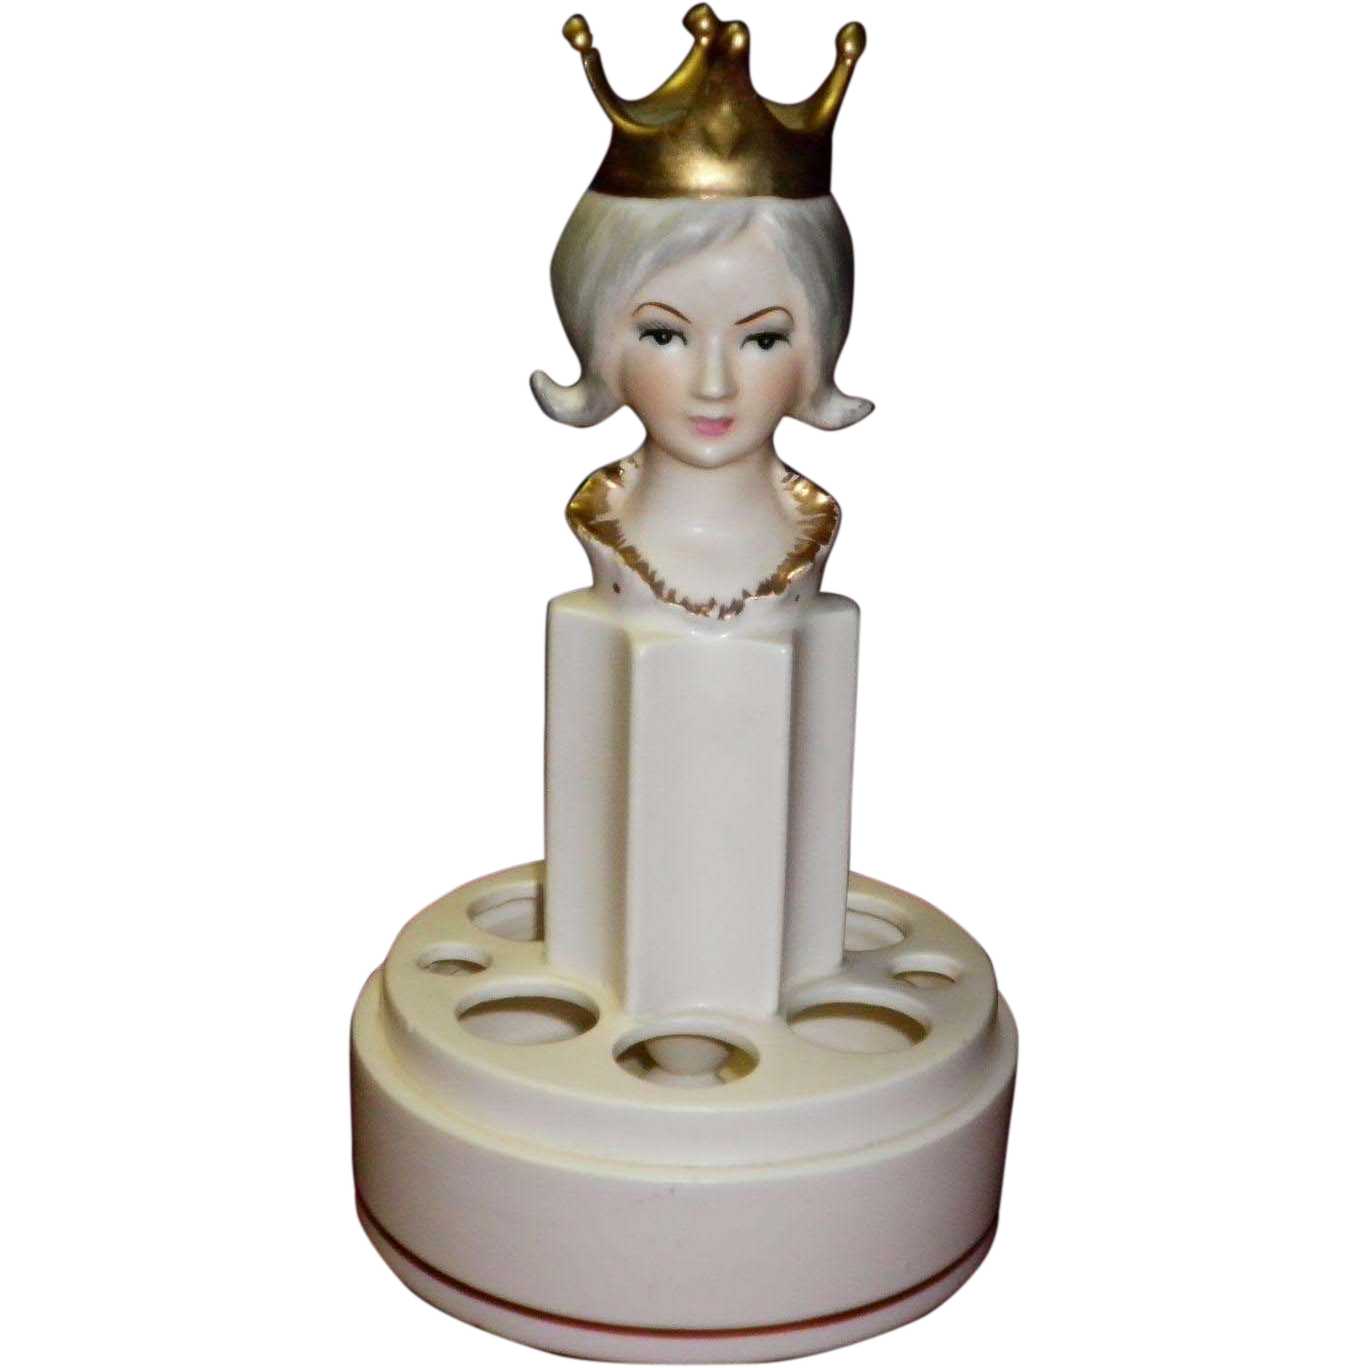 Vintage Porcelain Lipstick Holder / Queen Figurine